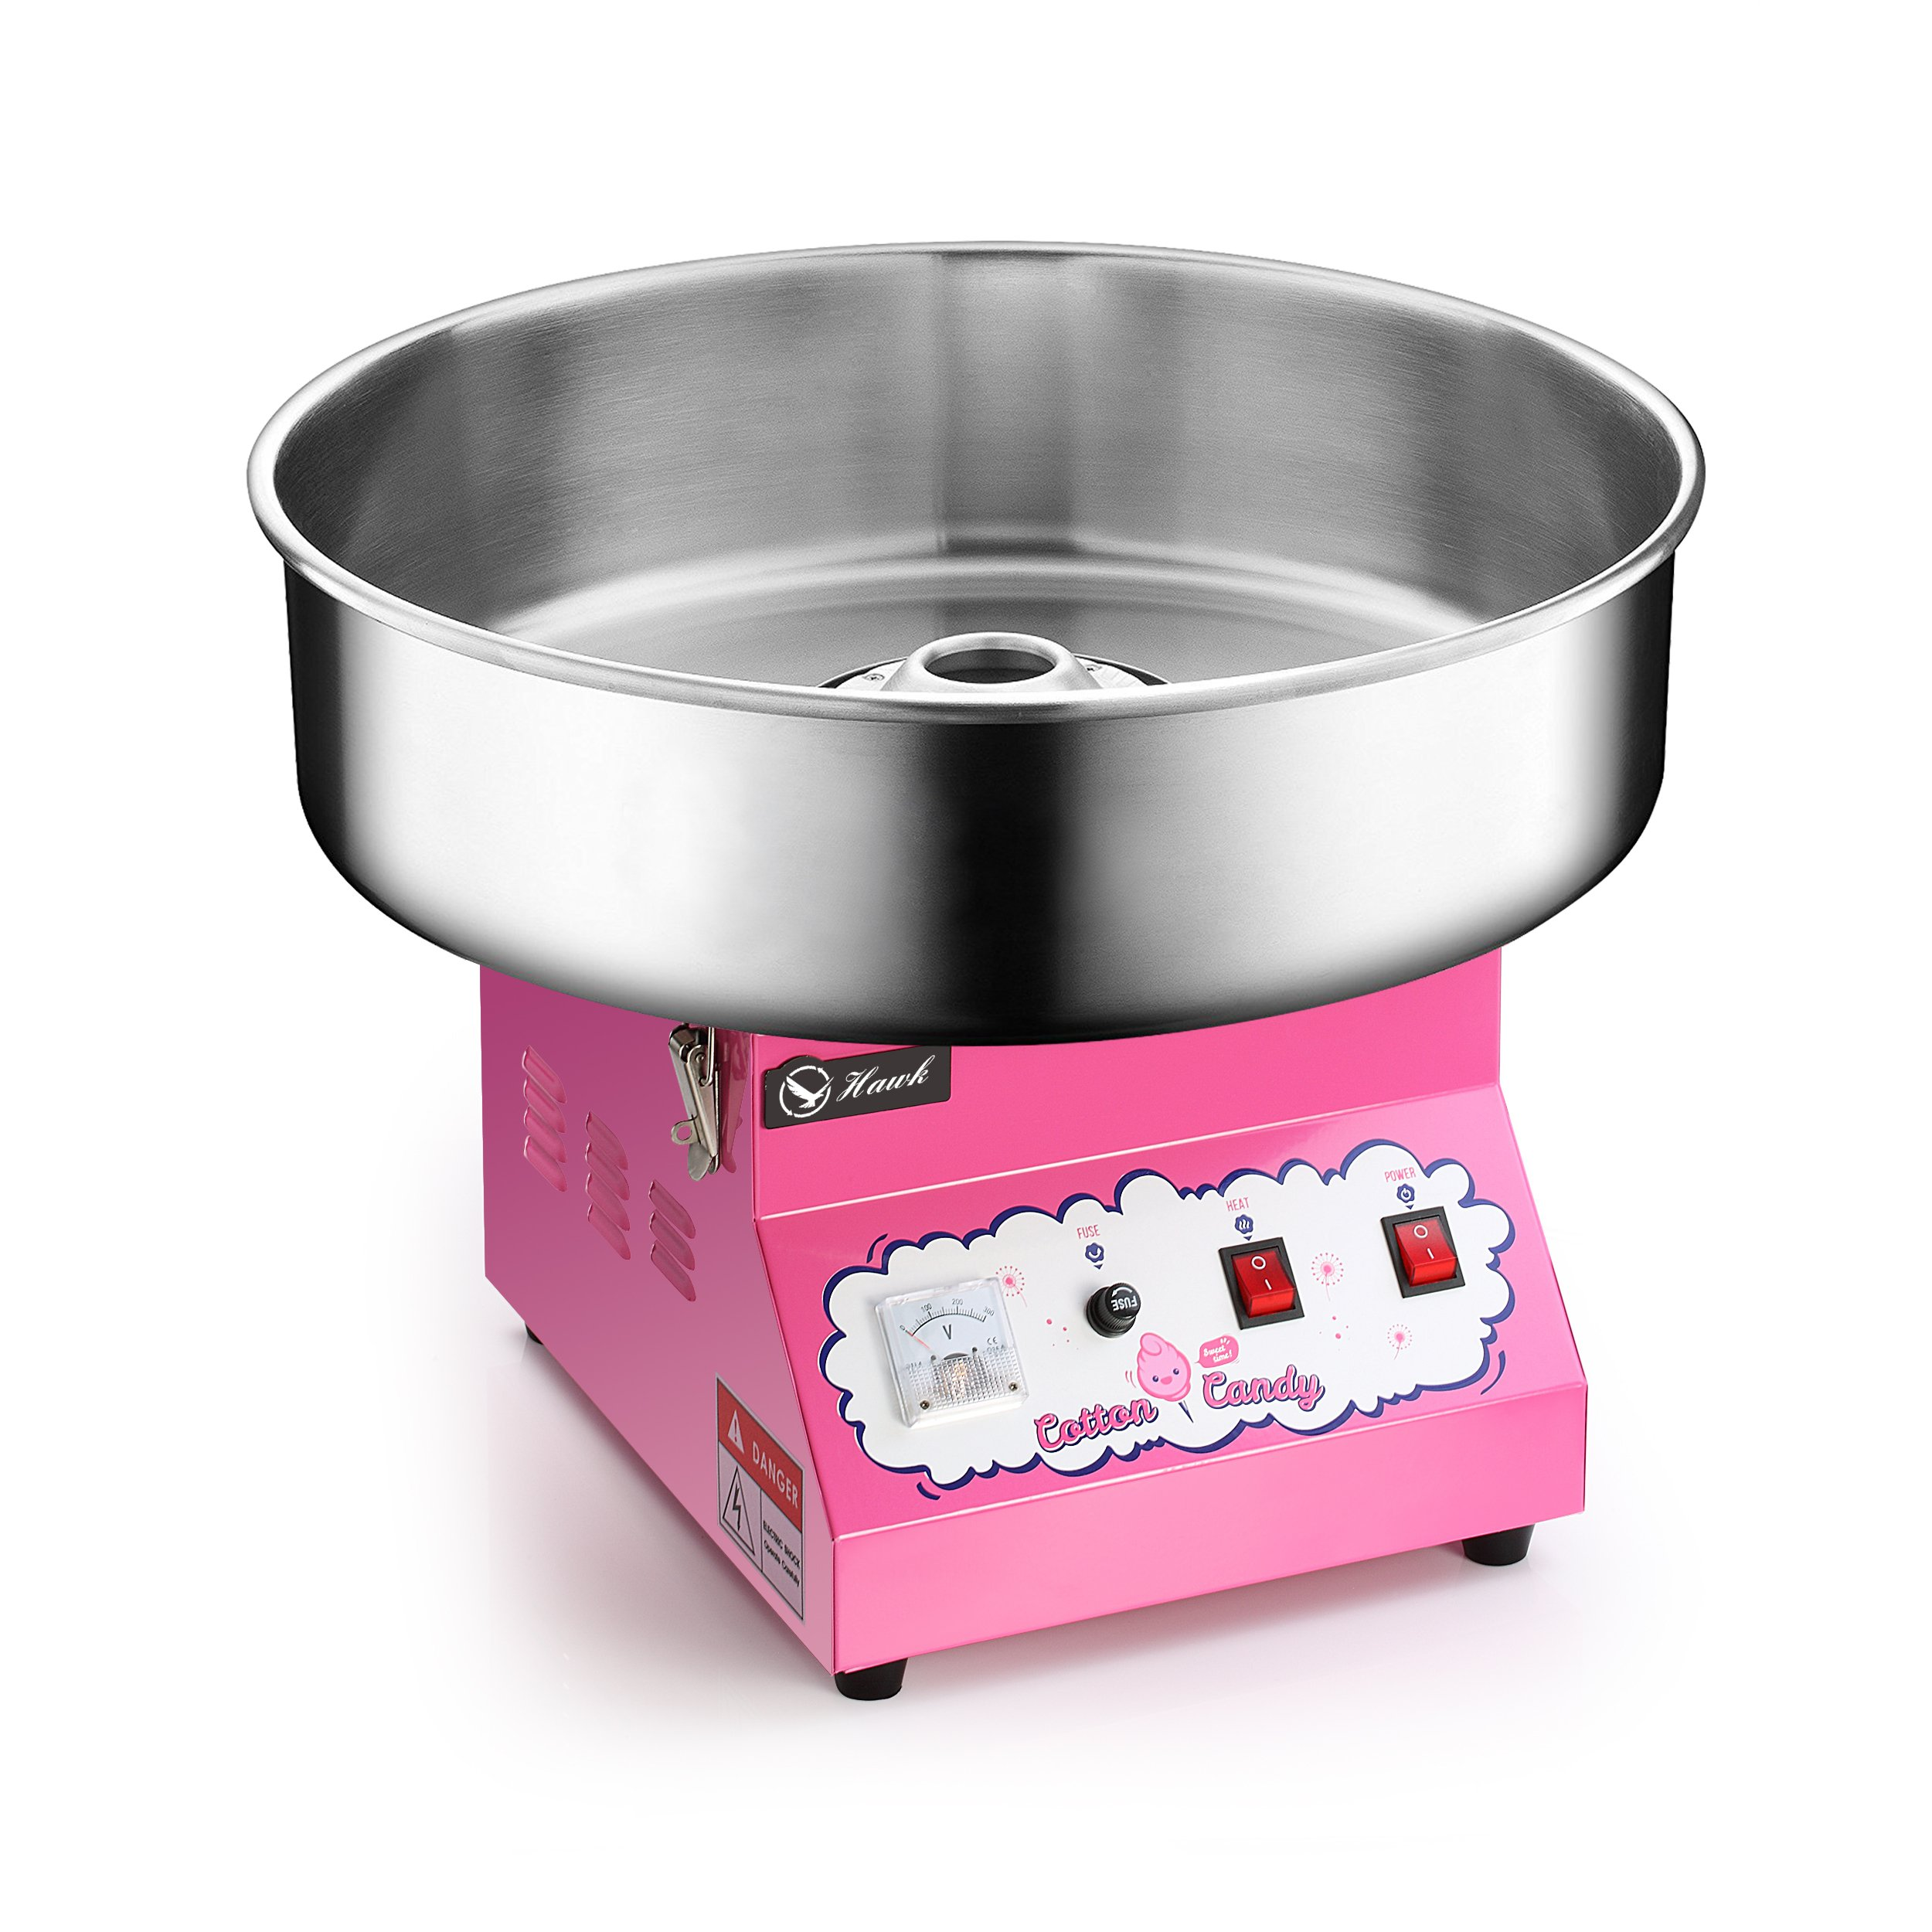 Electric Commercial Cotton Candy Machine / Candy Floss Maker Pink